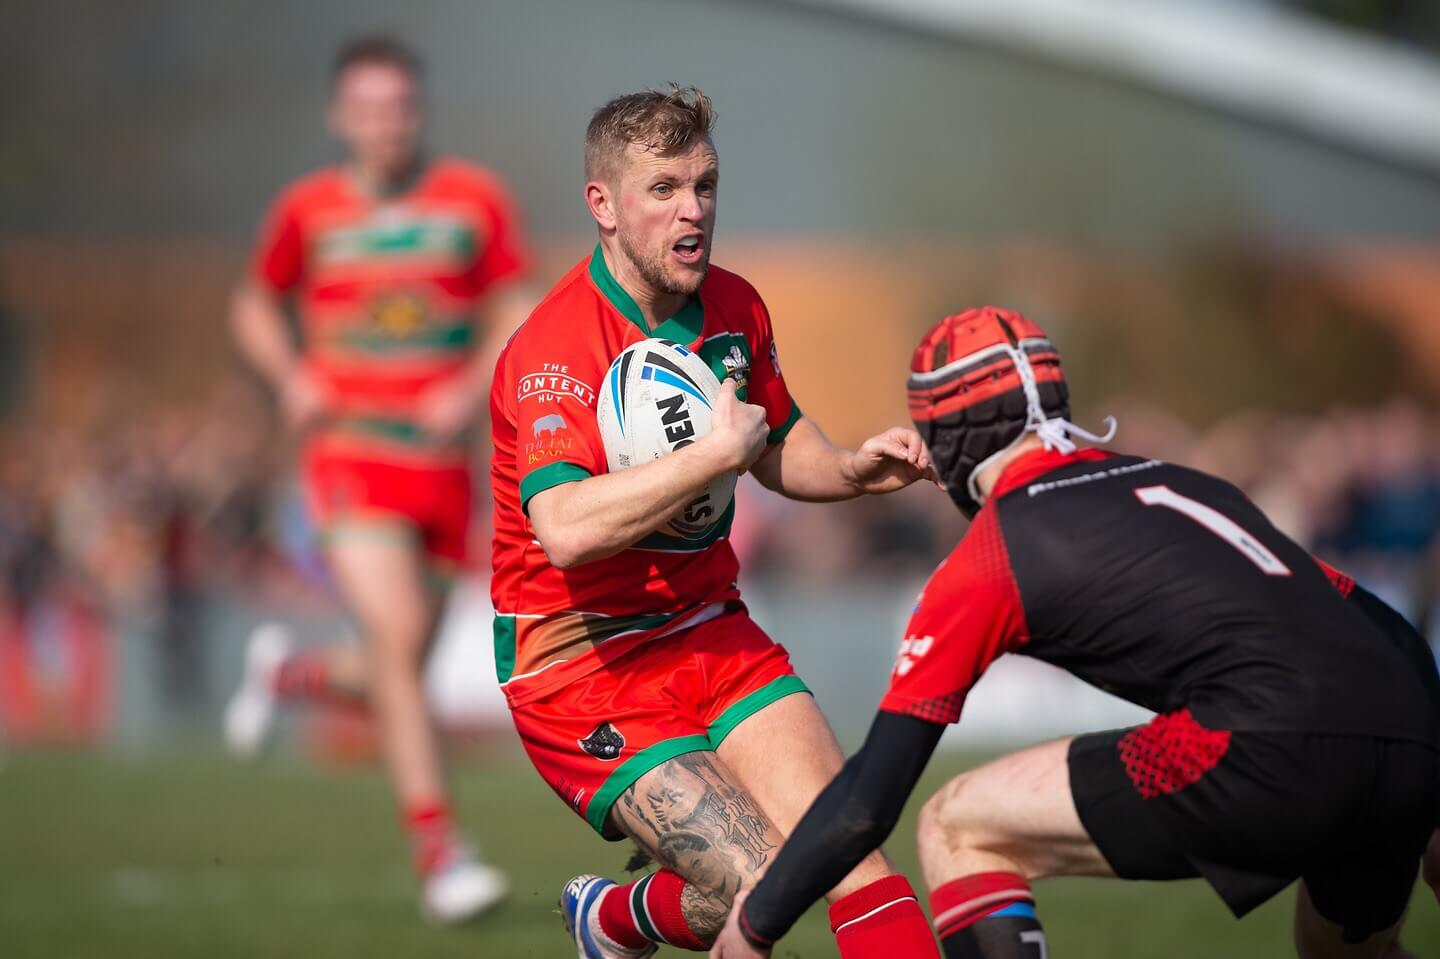 Report: Thatto Heath Crusaders 16-14 North Wales Crusaders